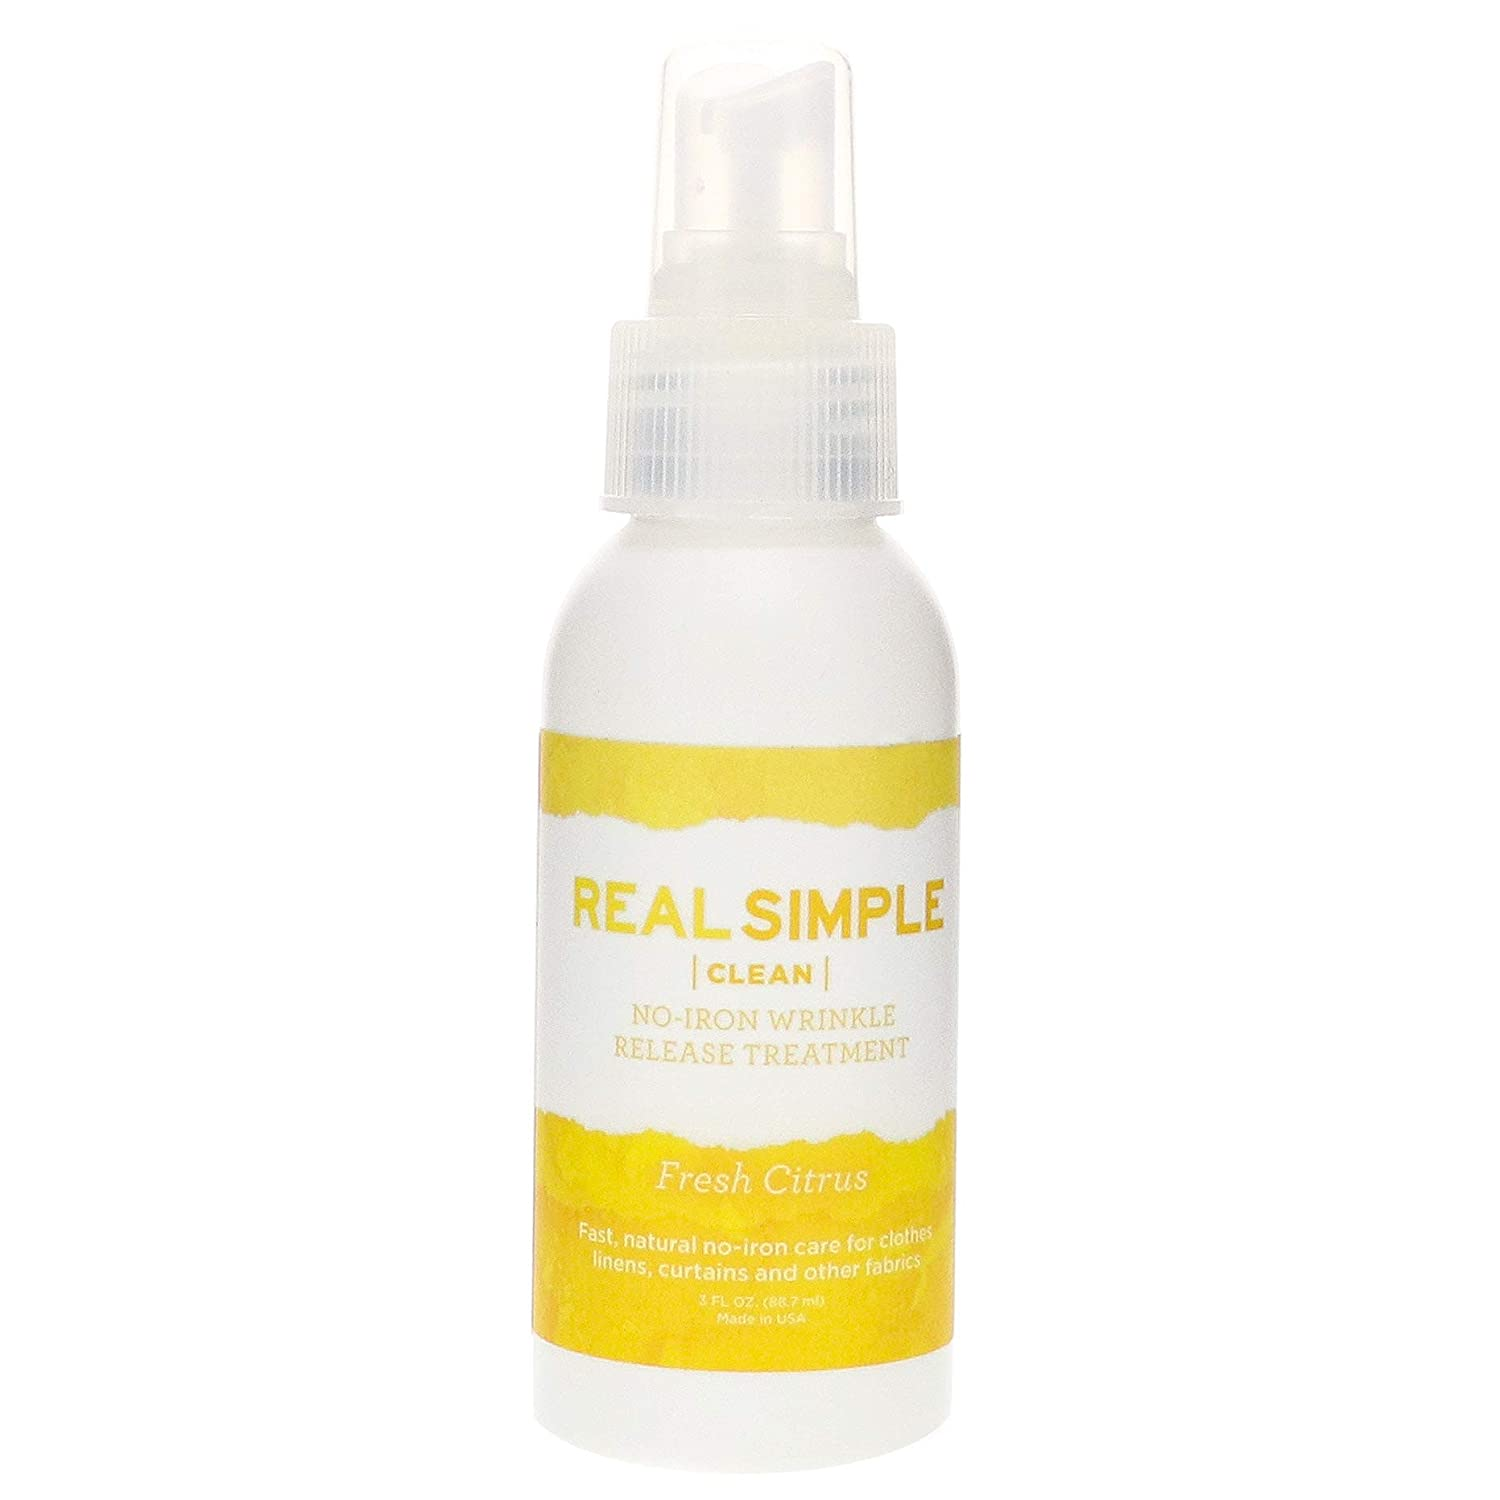 Real Simple Clean Travel Size Wrinkle Release, Static Cling Remover, Pillow & Fabric Freshener, Out The Door No-Iron Quick Fix, USDA Certified Bio-Based & Biodegradable (3 oz. ea, Fresh Citrus)